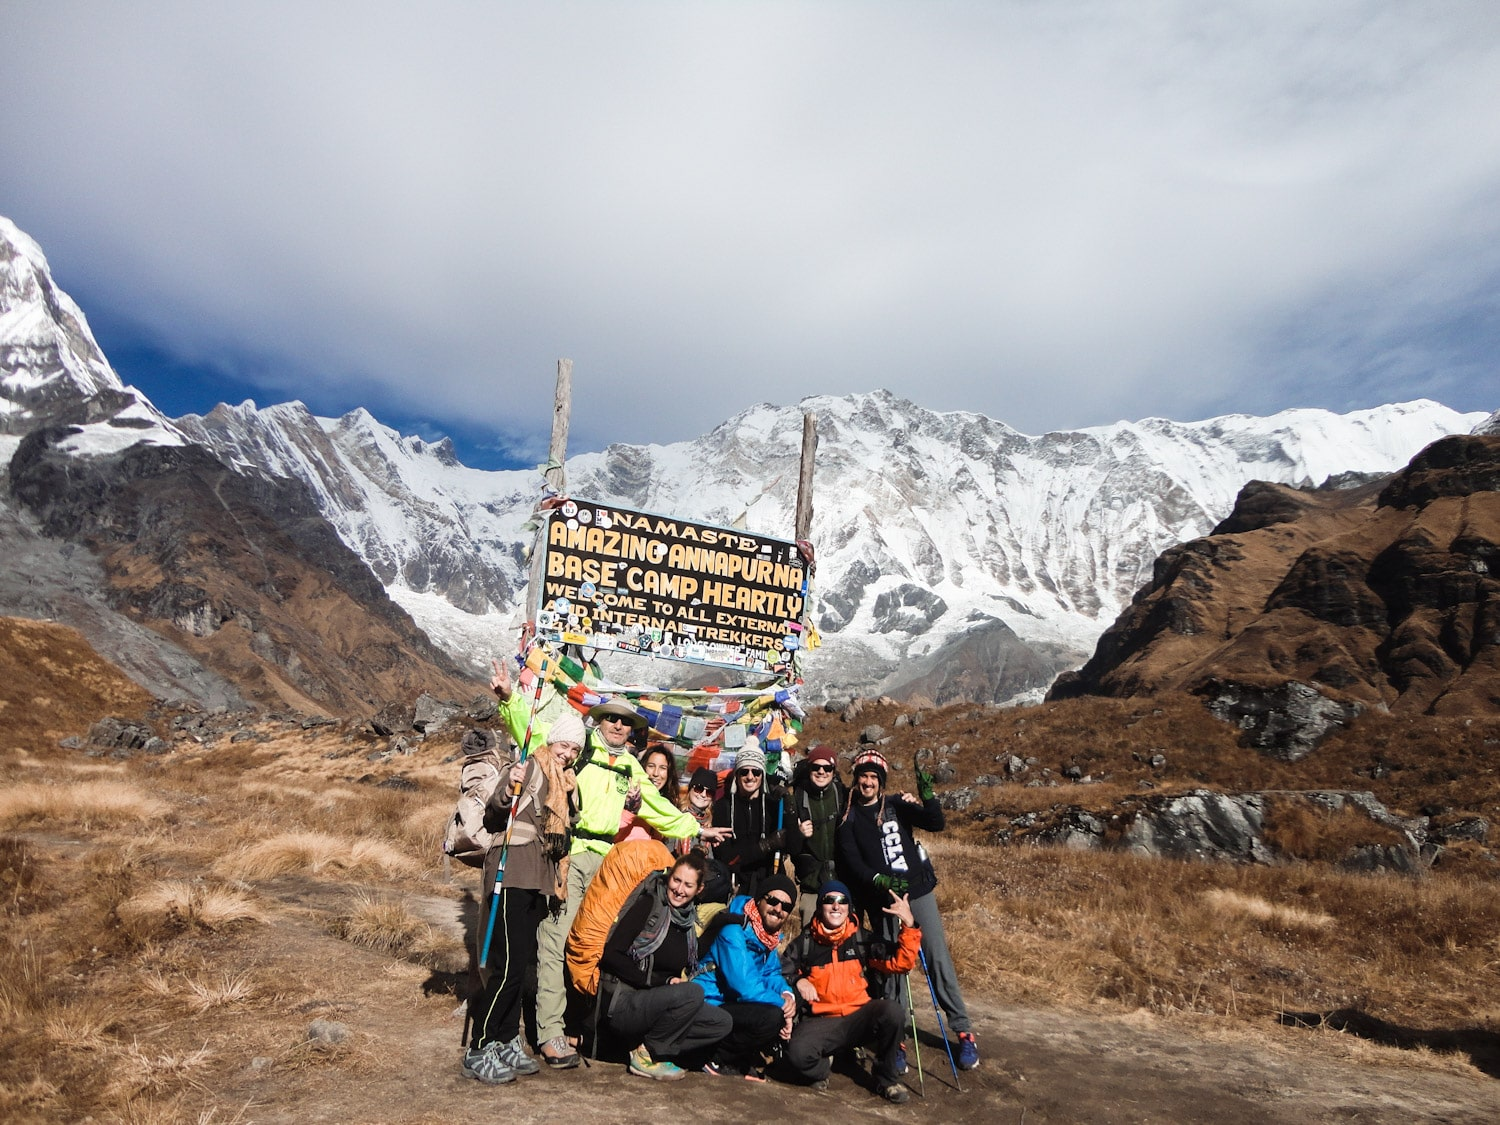 Annapurna Base Camp Welcome Sign | Bucketlist Bri